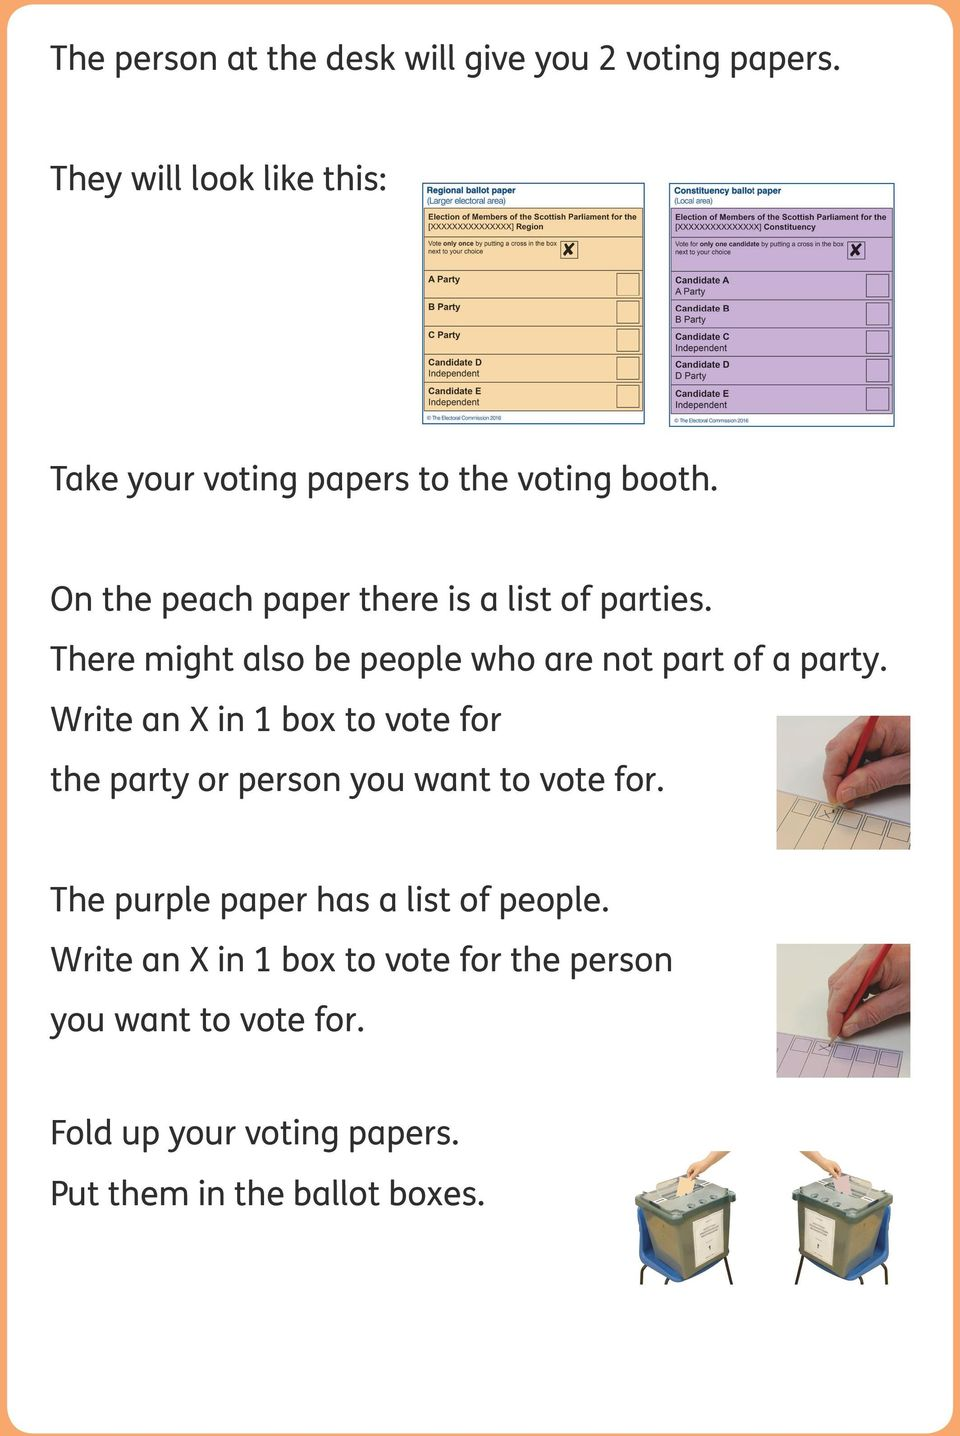 On the peach paper there is a list of parties. There might also be people who are not part of a party.